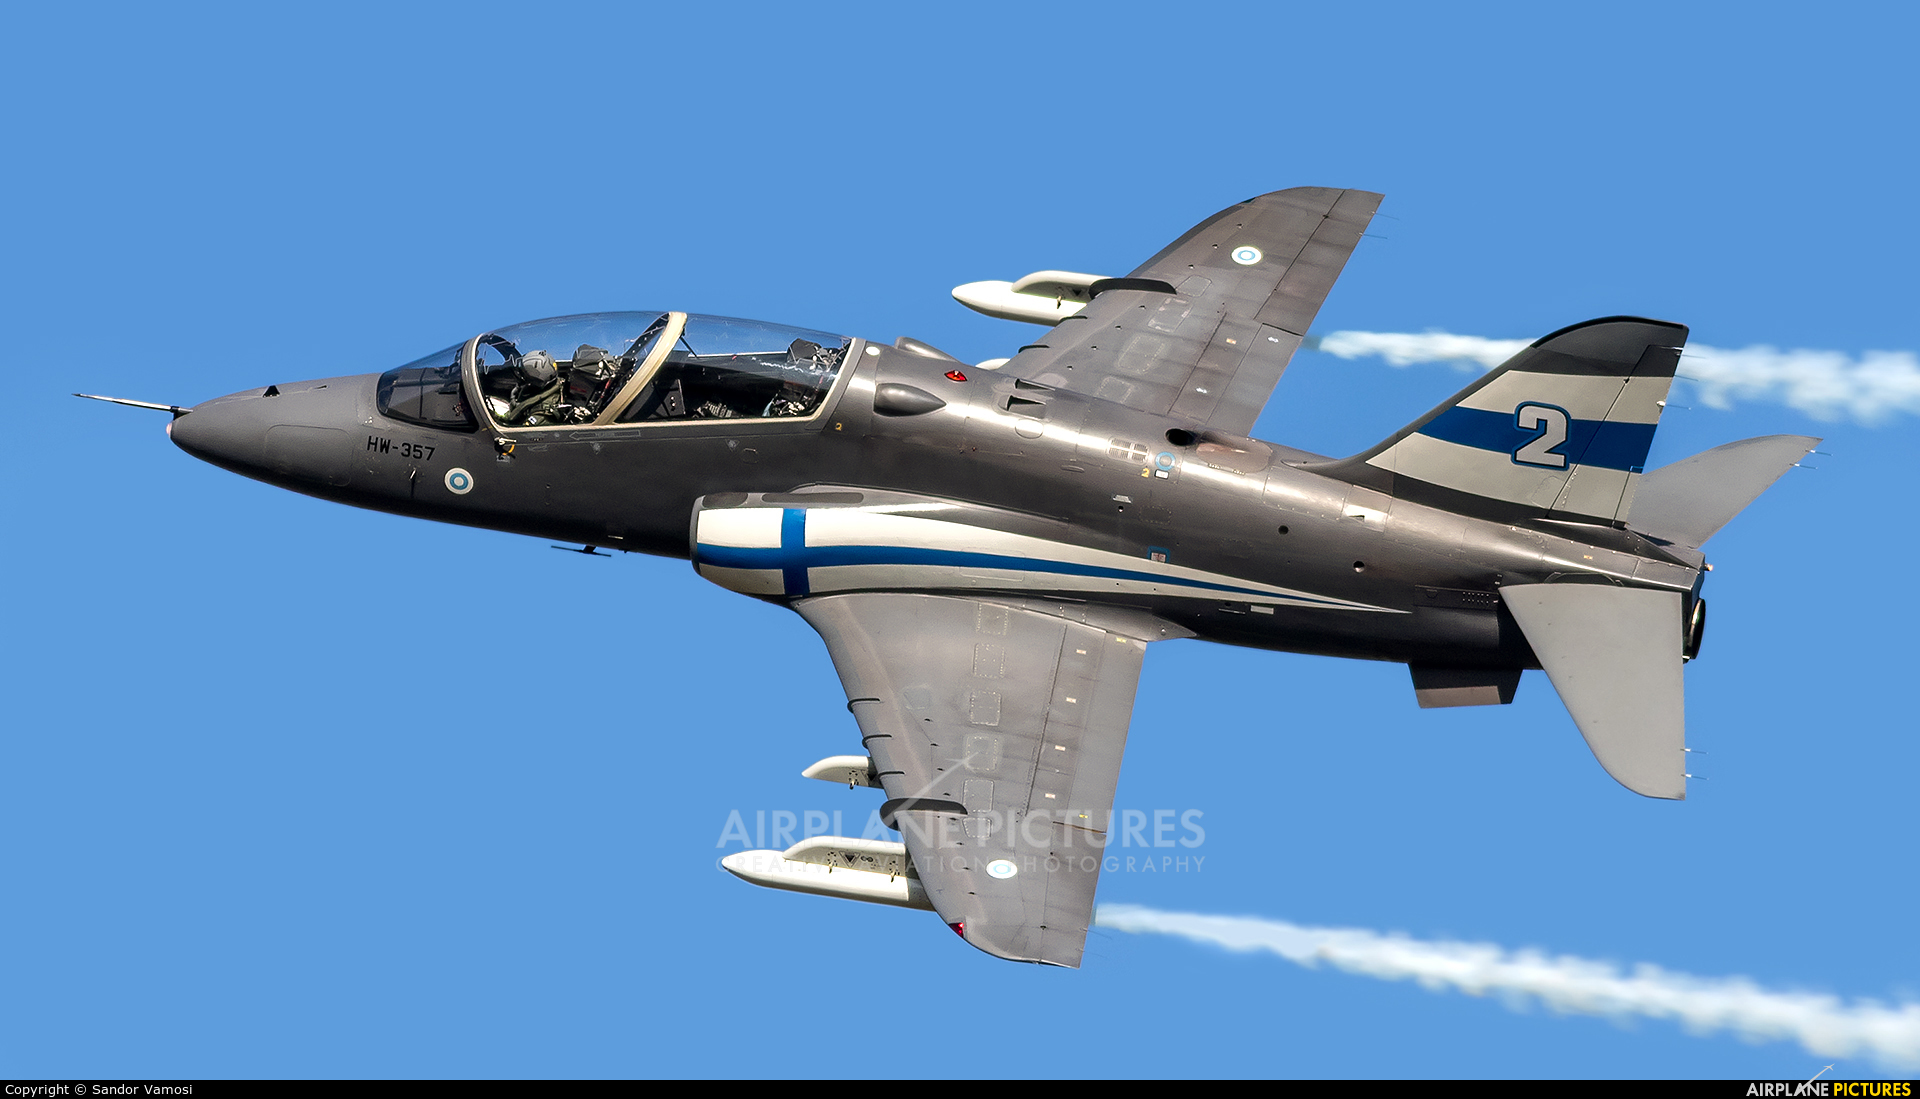 Finland - Air Force: Midnight Hawks HW-357 aircraft at Ostrava Mošnov